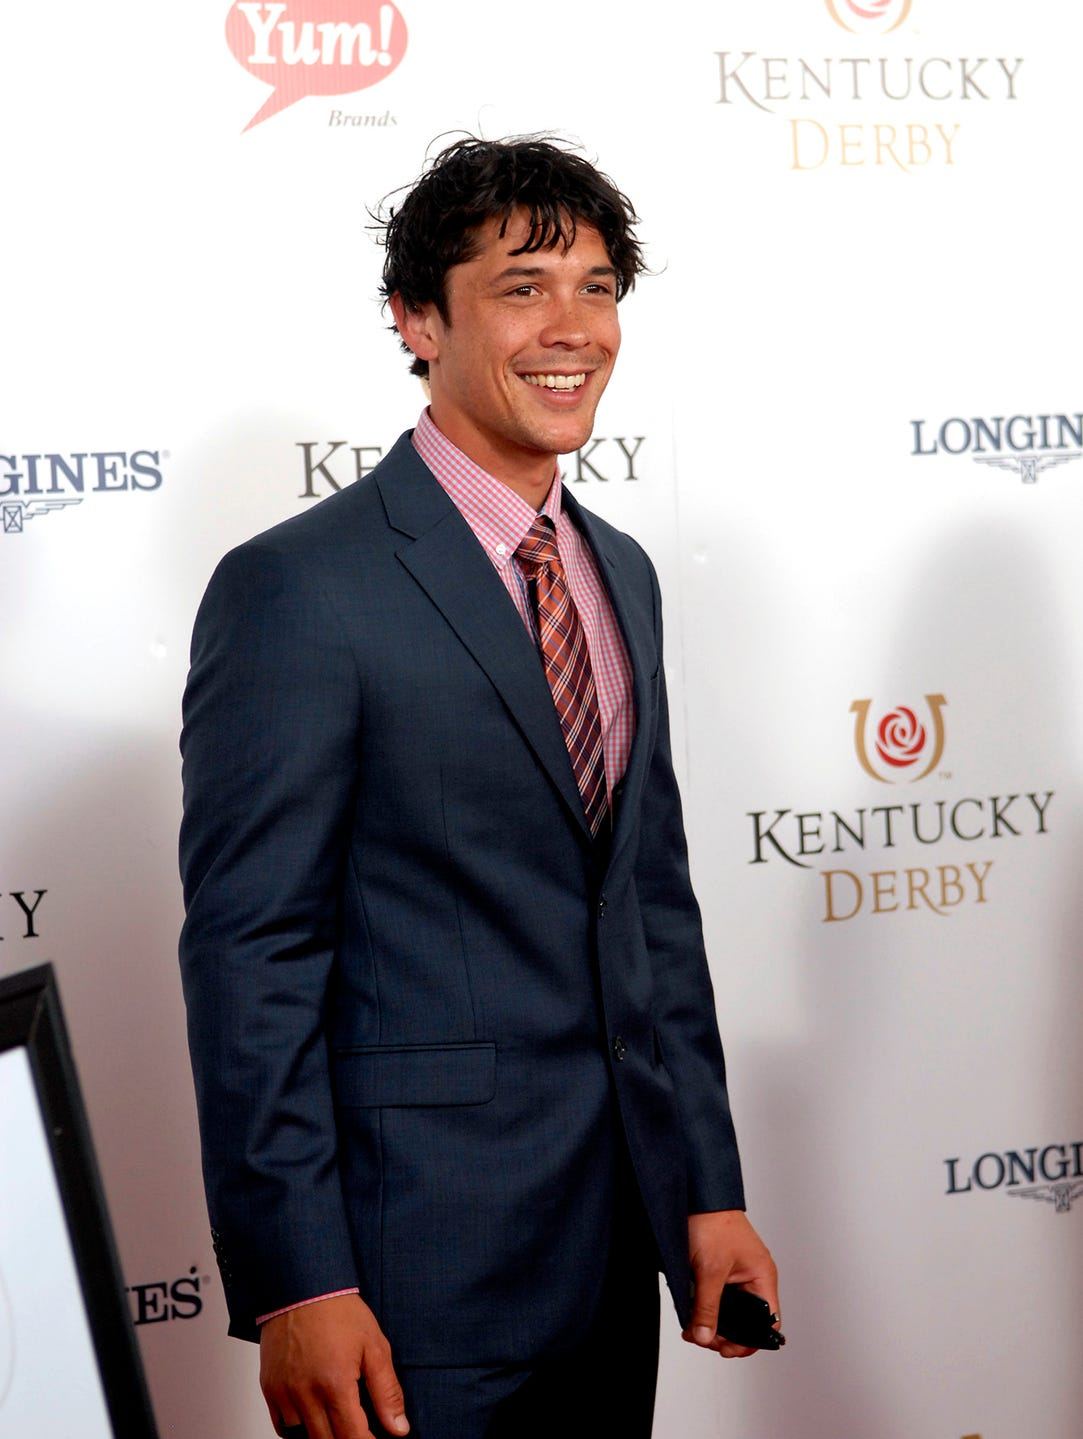 Actor Bob Marley from the CW's 100 poses for a photo on the Derby Red Carpet.  May 03, 2014